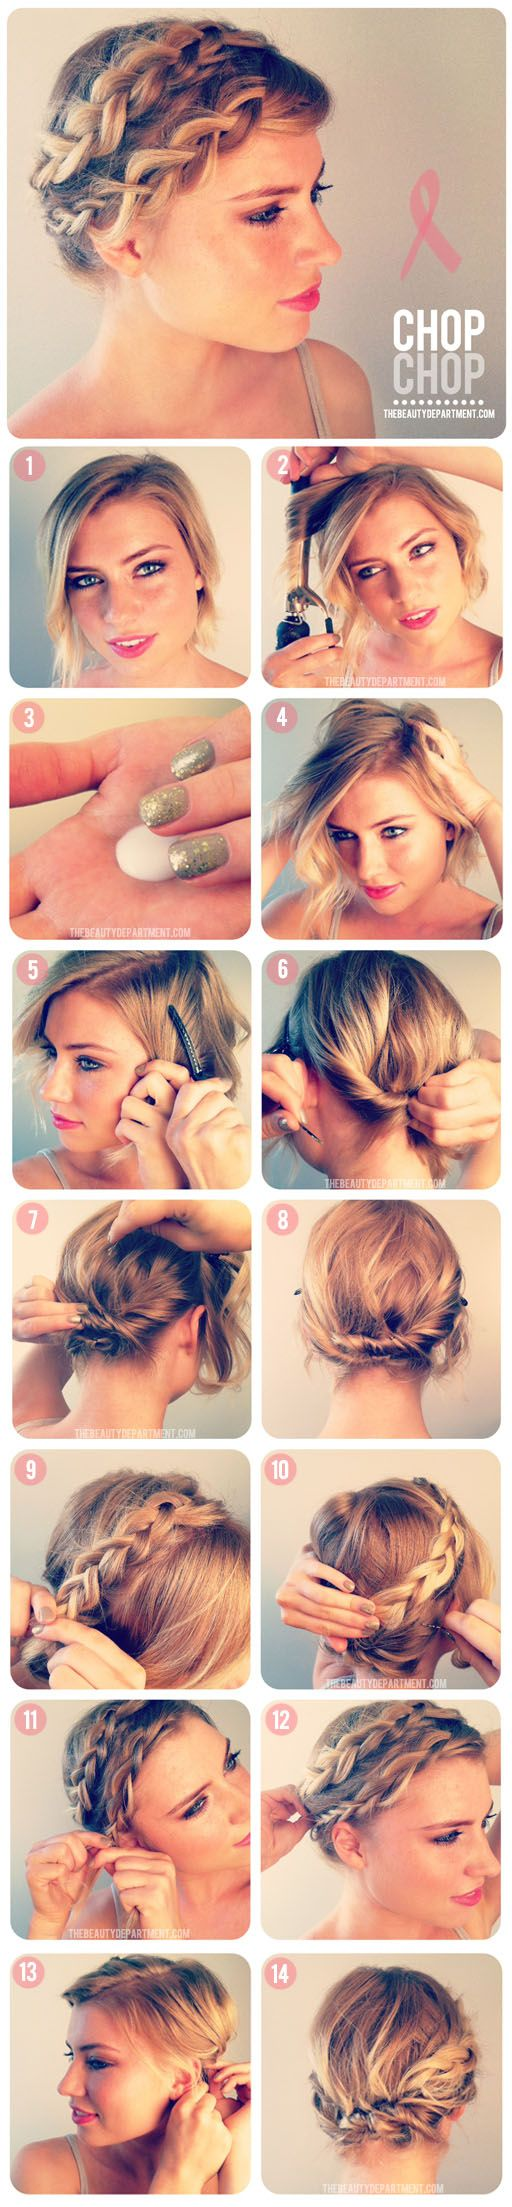 Braid for Short Hair Tutorial